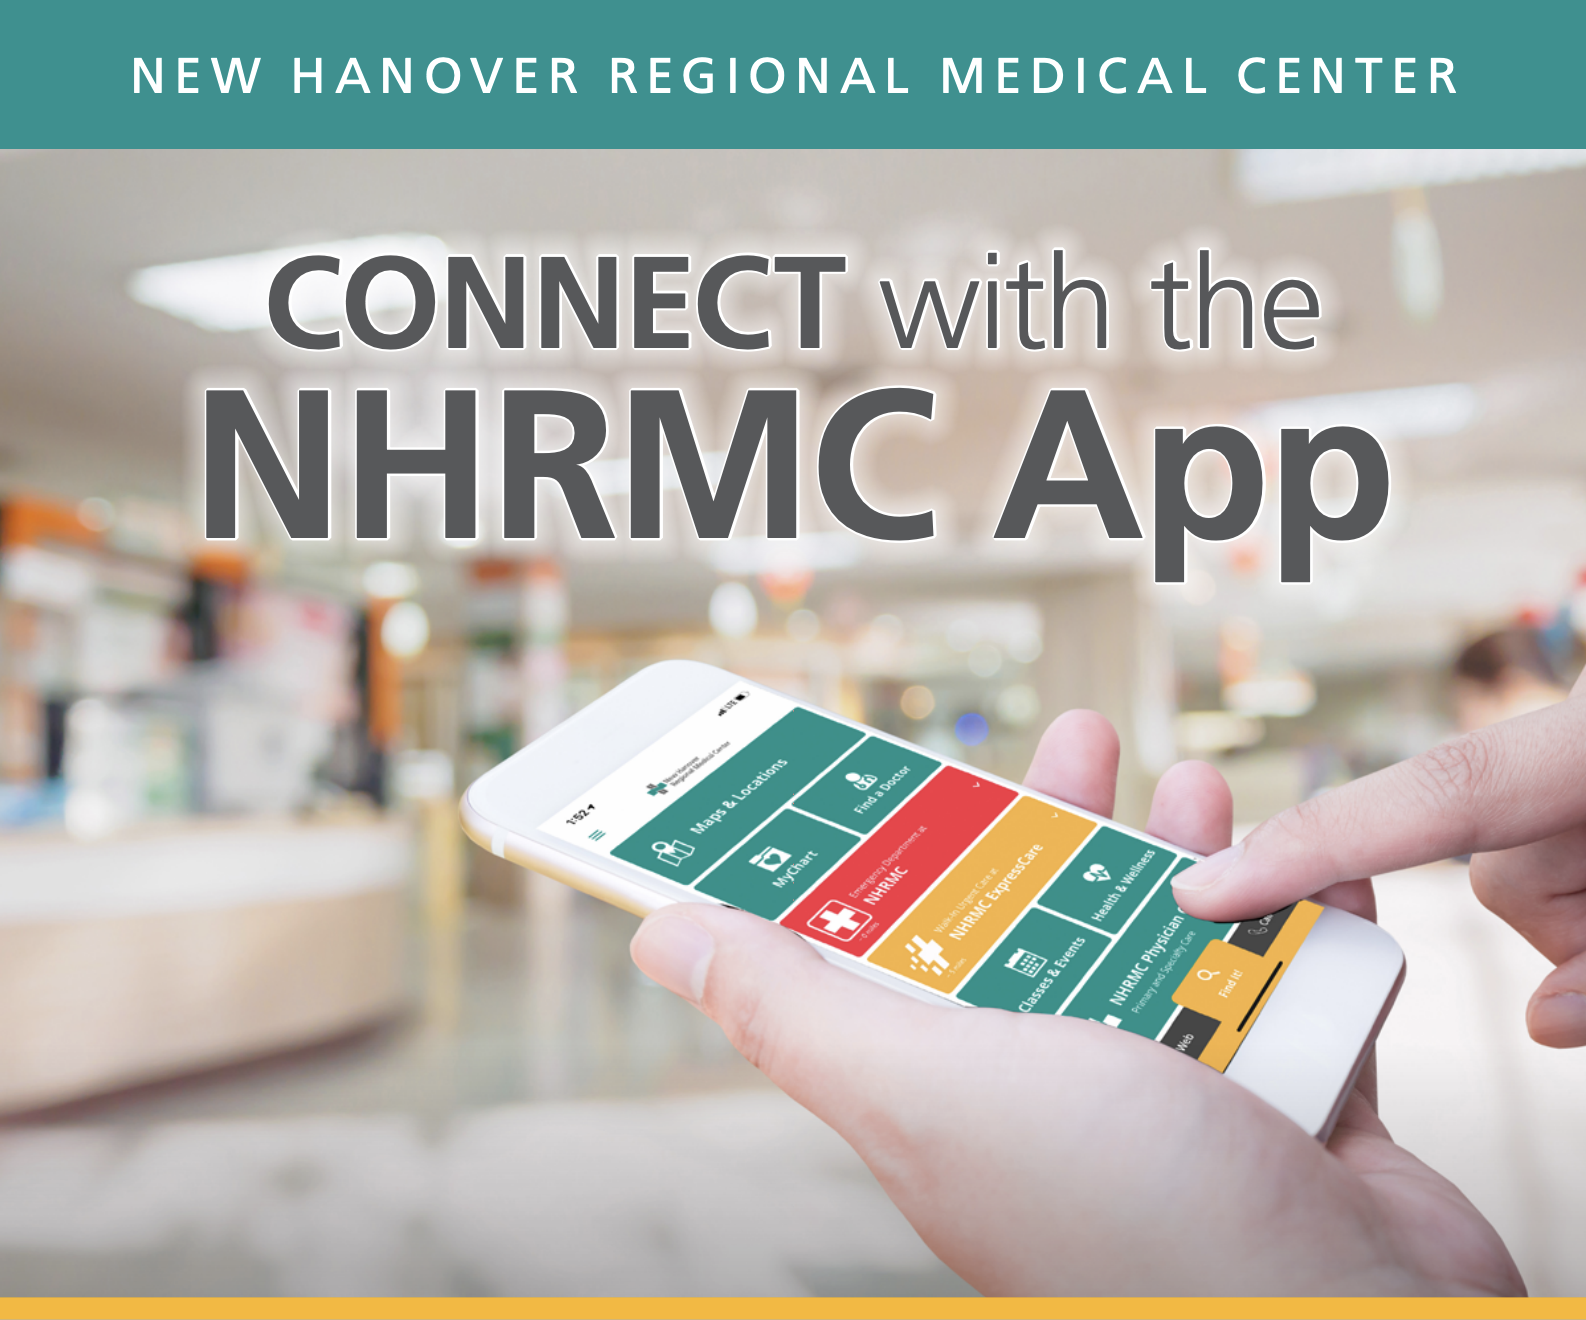 Nhrmc App New Hanover Regional Medical Center Wilmington Nc